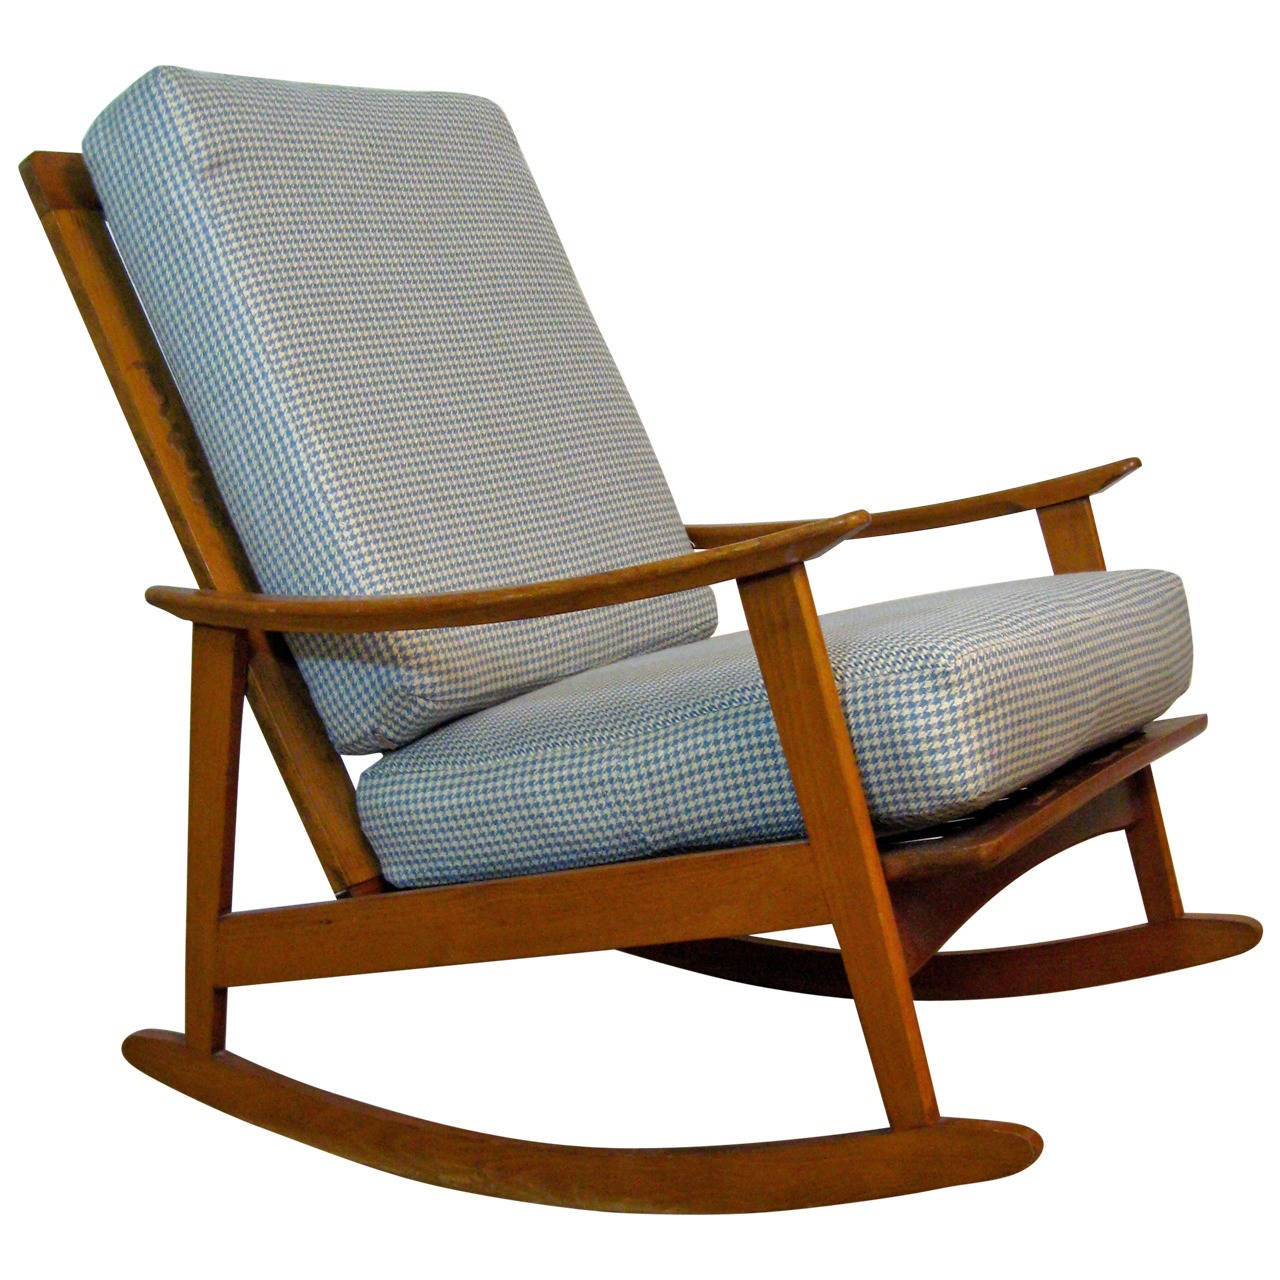 Modern Rocking Chair ~ Mid century modern rocking chair for sale at stdibs